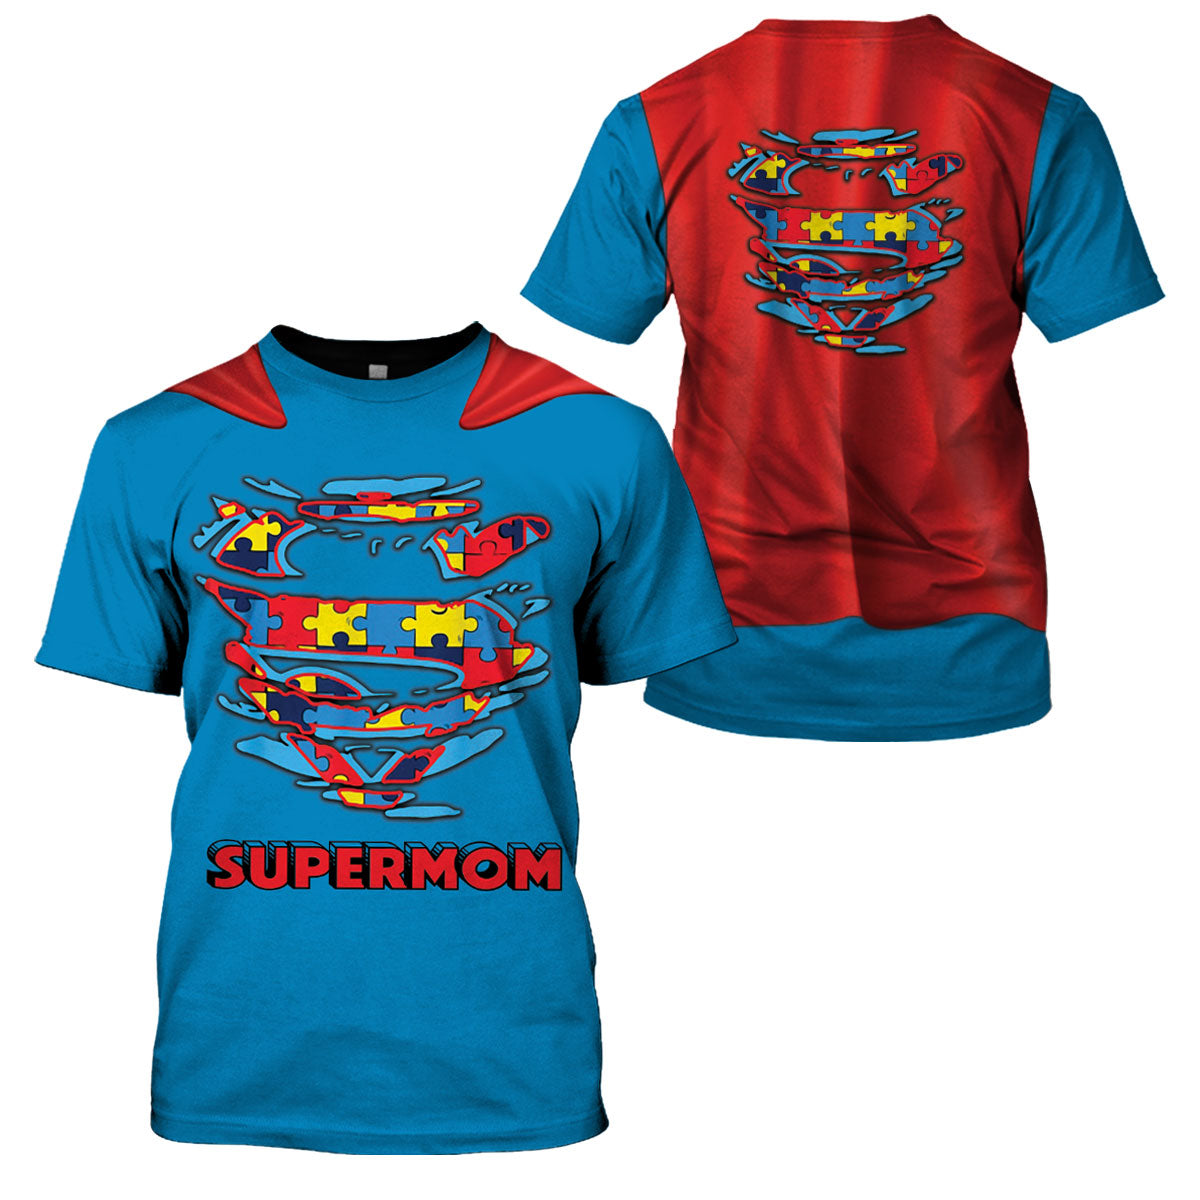 Supermom Autism Awareness 2020 - GnWarriors Clothing